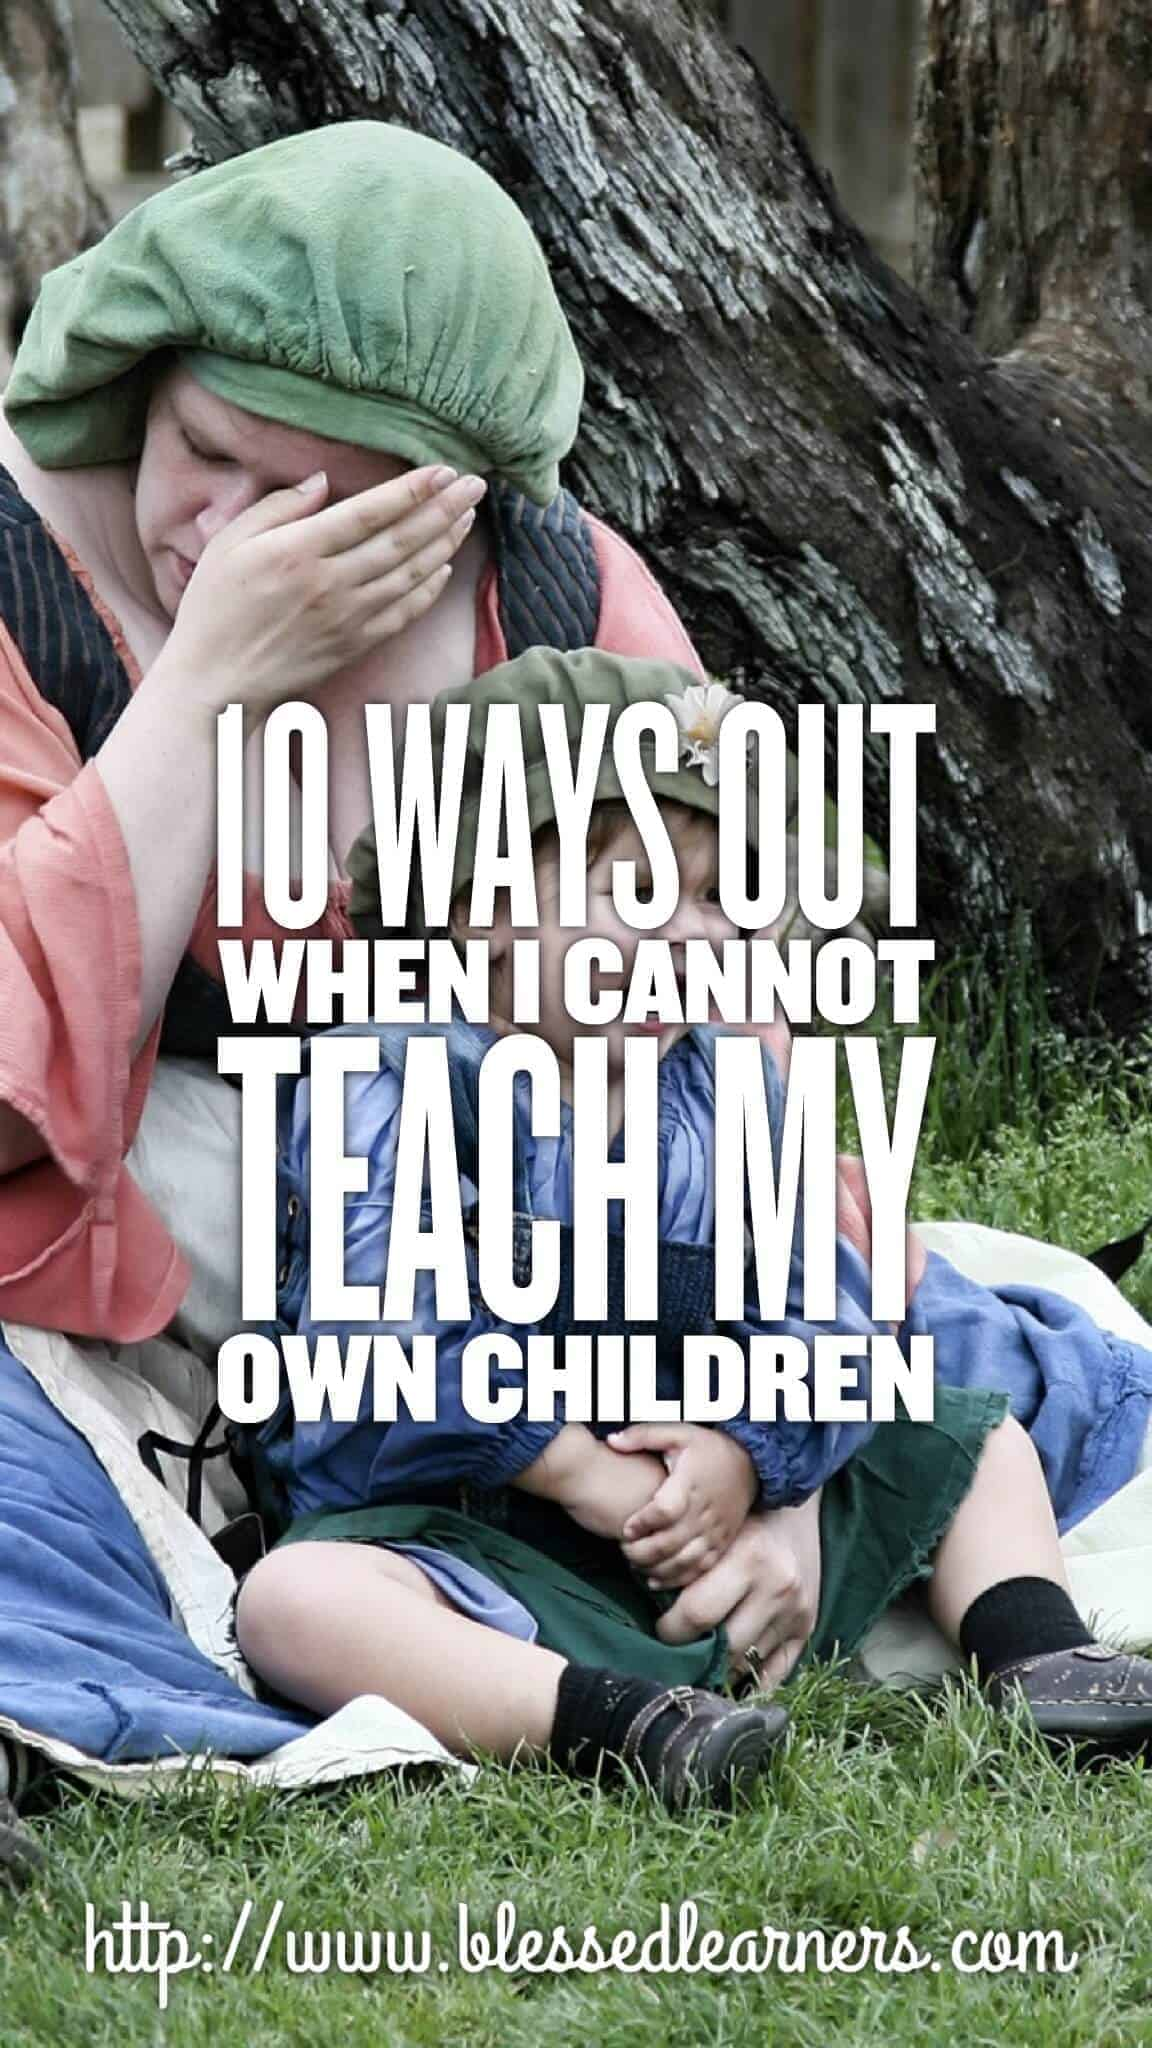 I would be very desperate when I cannot teach children. All homeschooling will feel the same. Here are 10 ways out when I cannot teach my children.